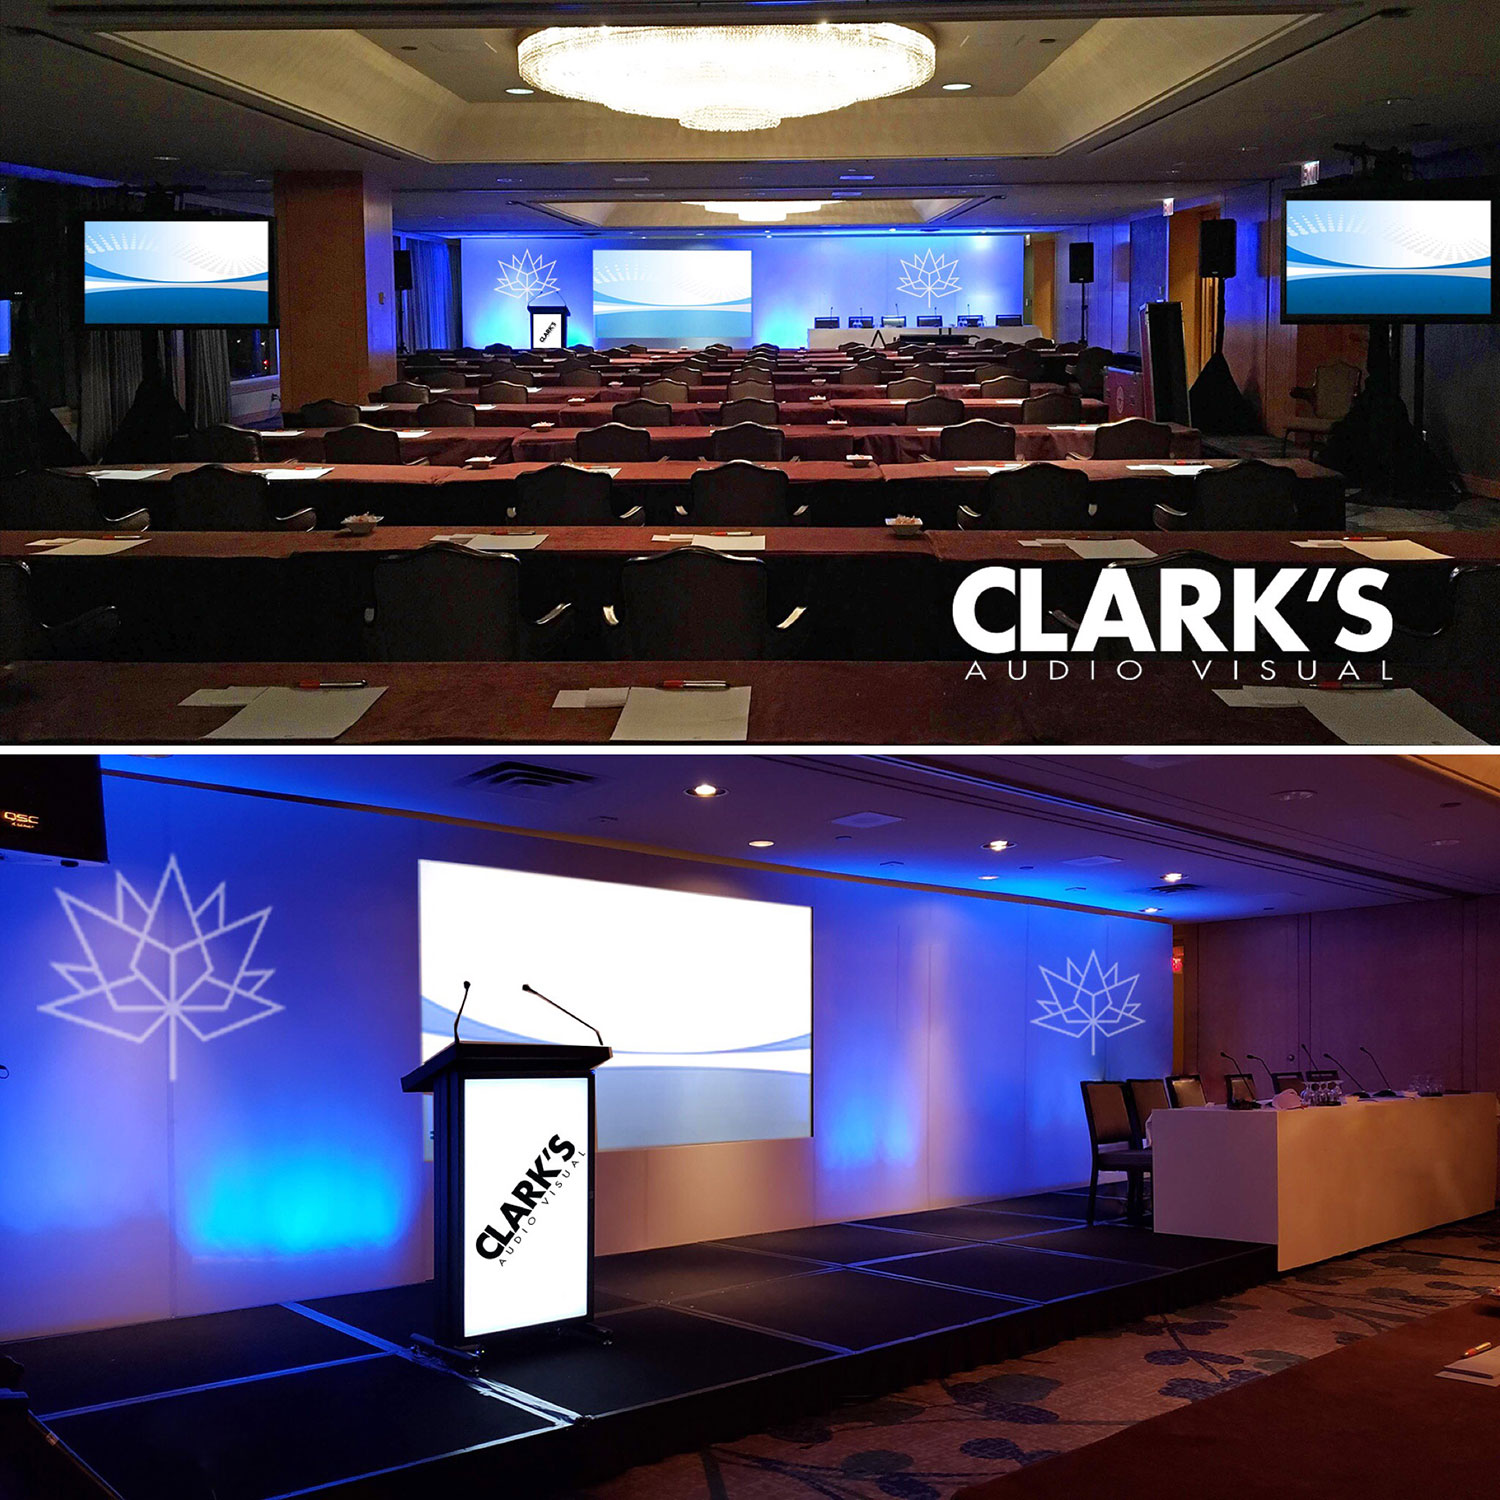 Clark's Audio Visual Projectors and Podiums